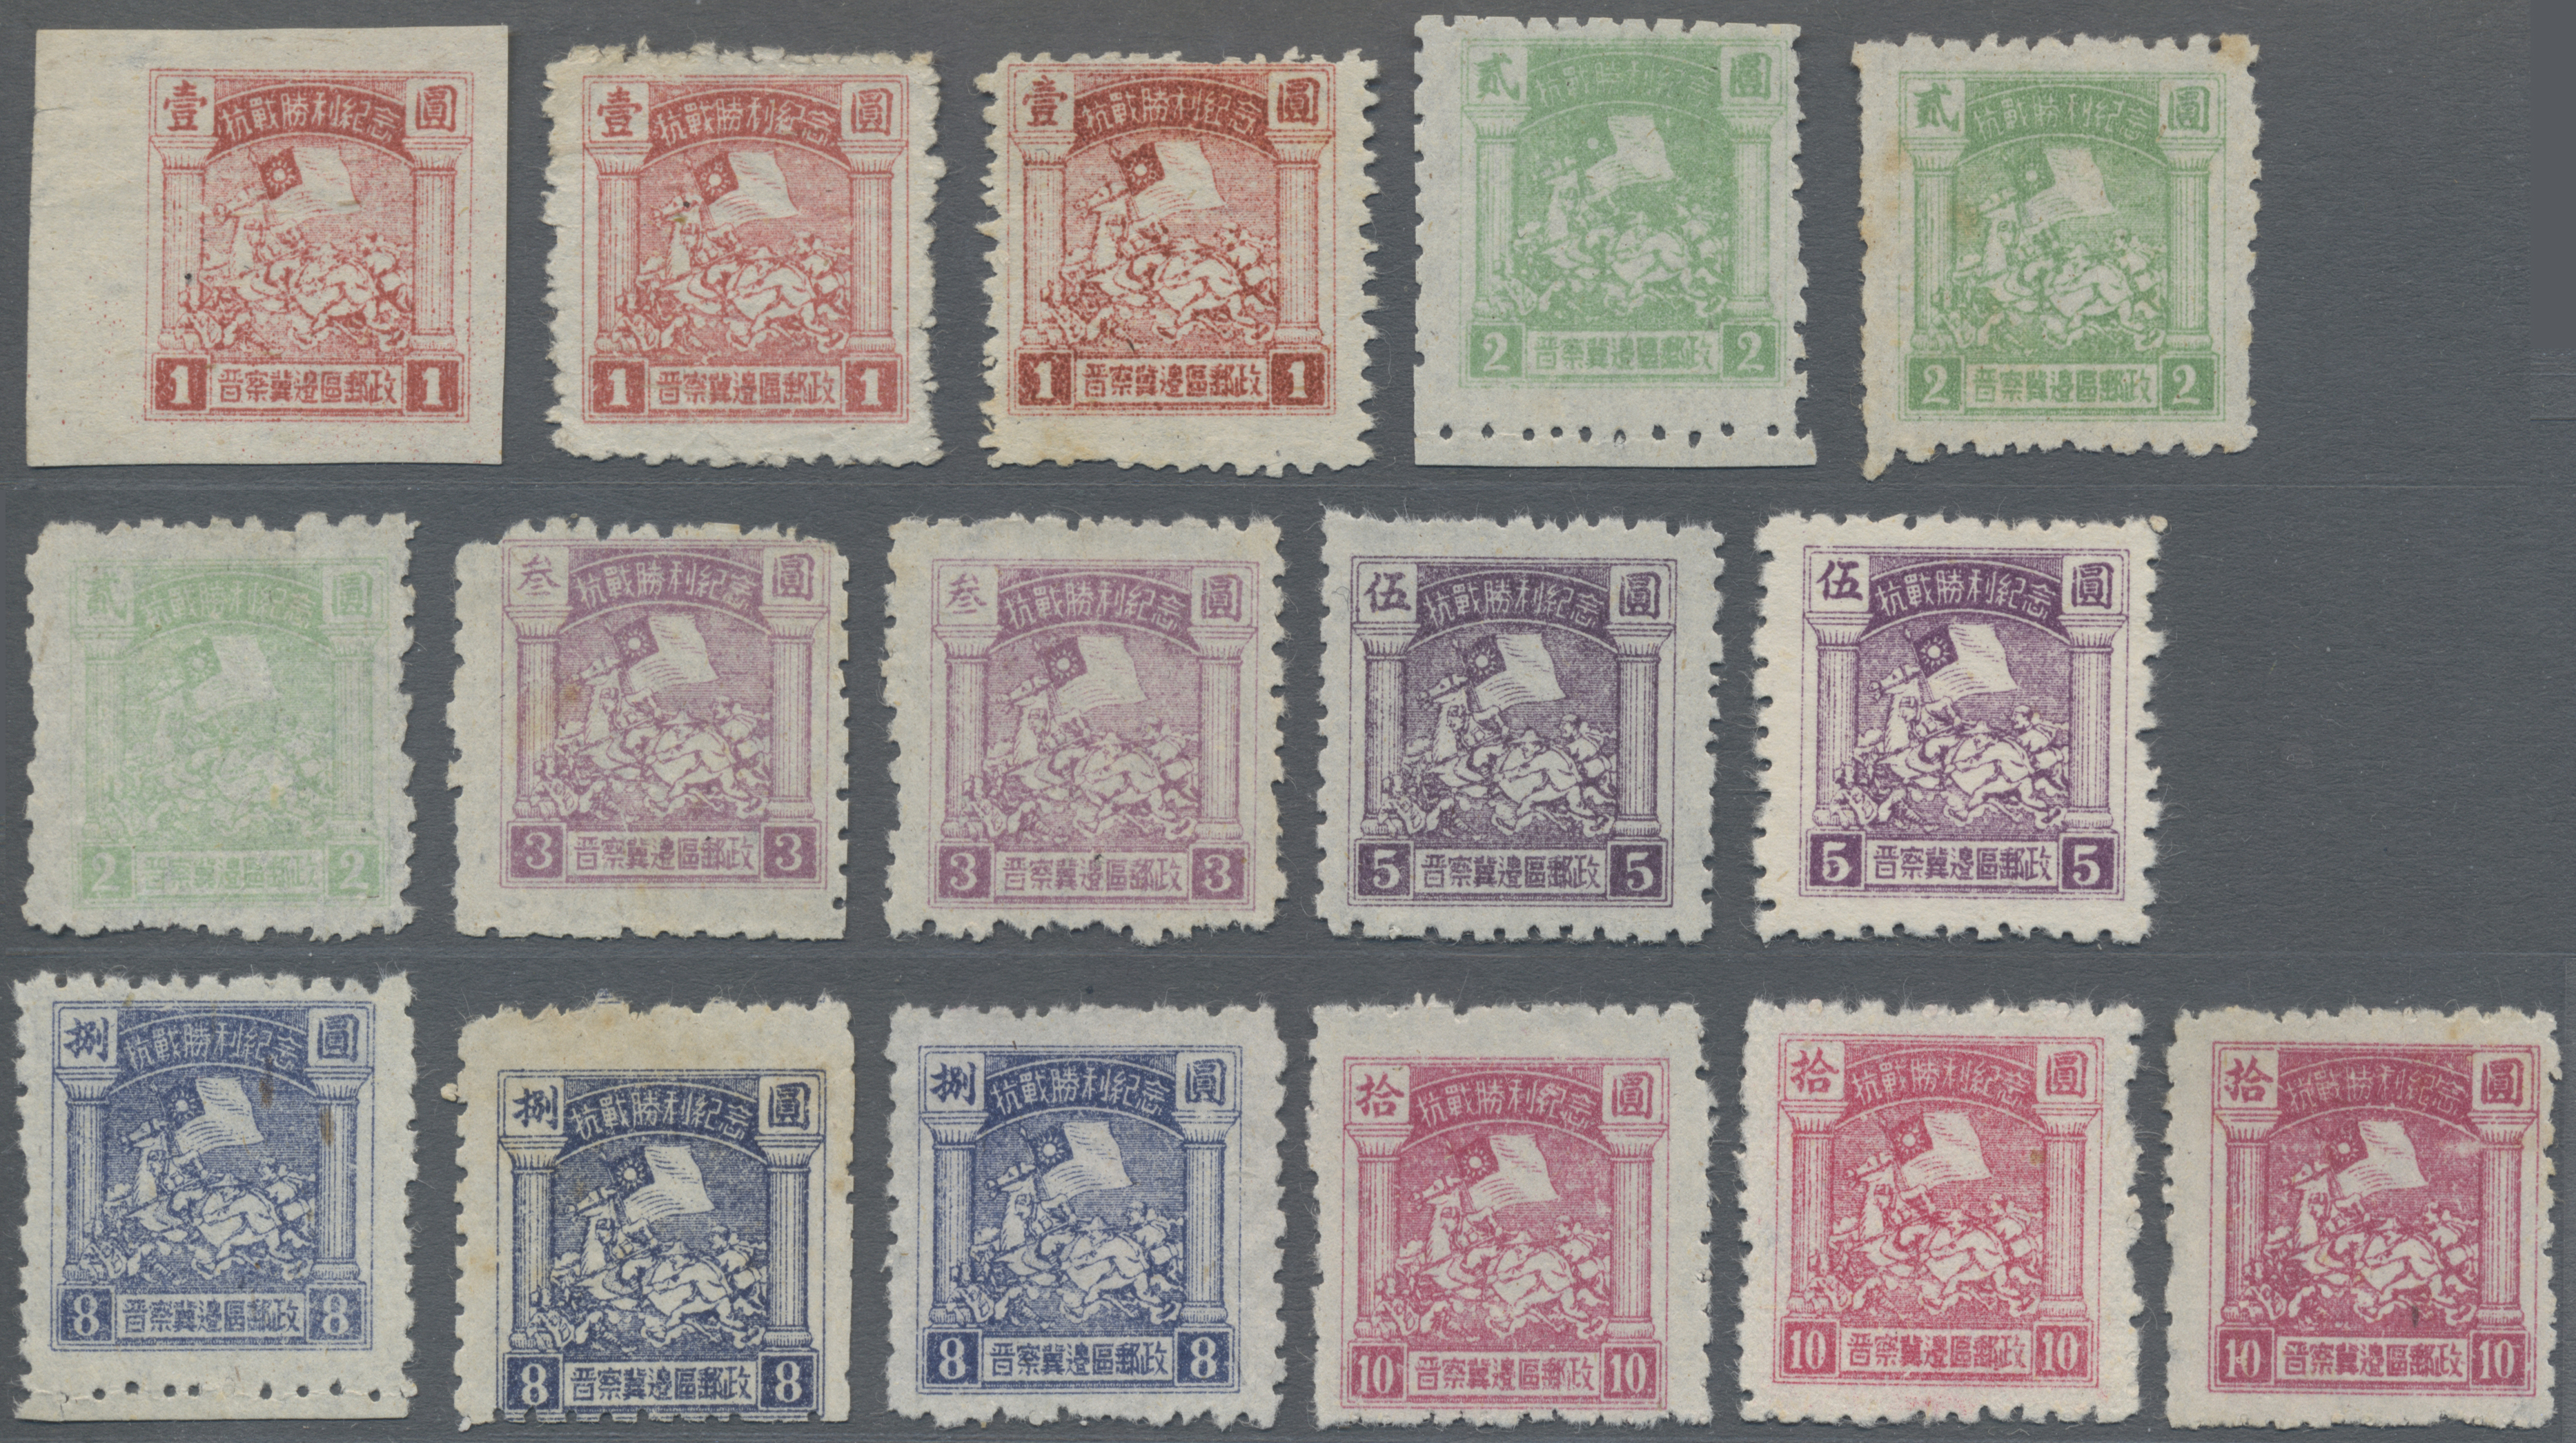 Lot 05005 - China - Volksrepublik - Provinzen  -  Auktionshaus Christoph Gärtner GmbH & Co. KG Sale #46 Special Auction China - including Liberated Areas